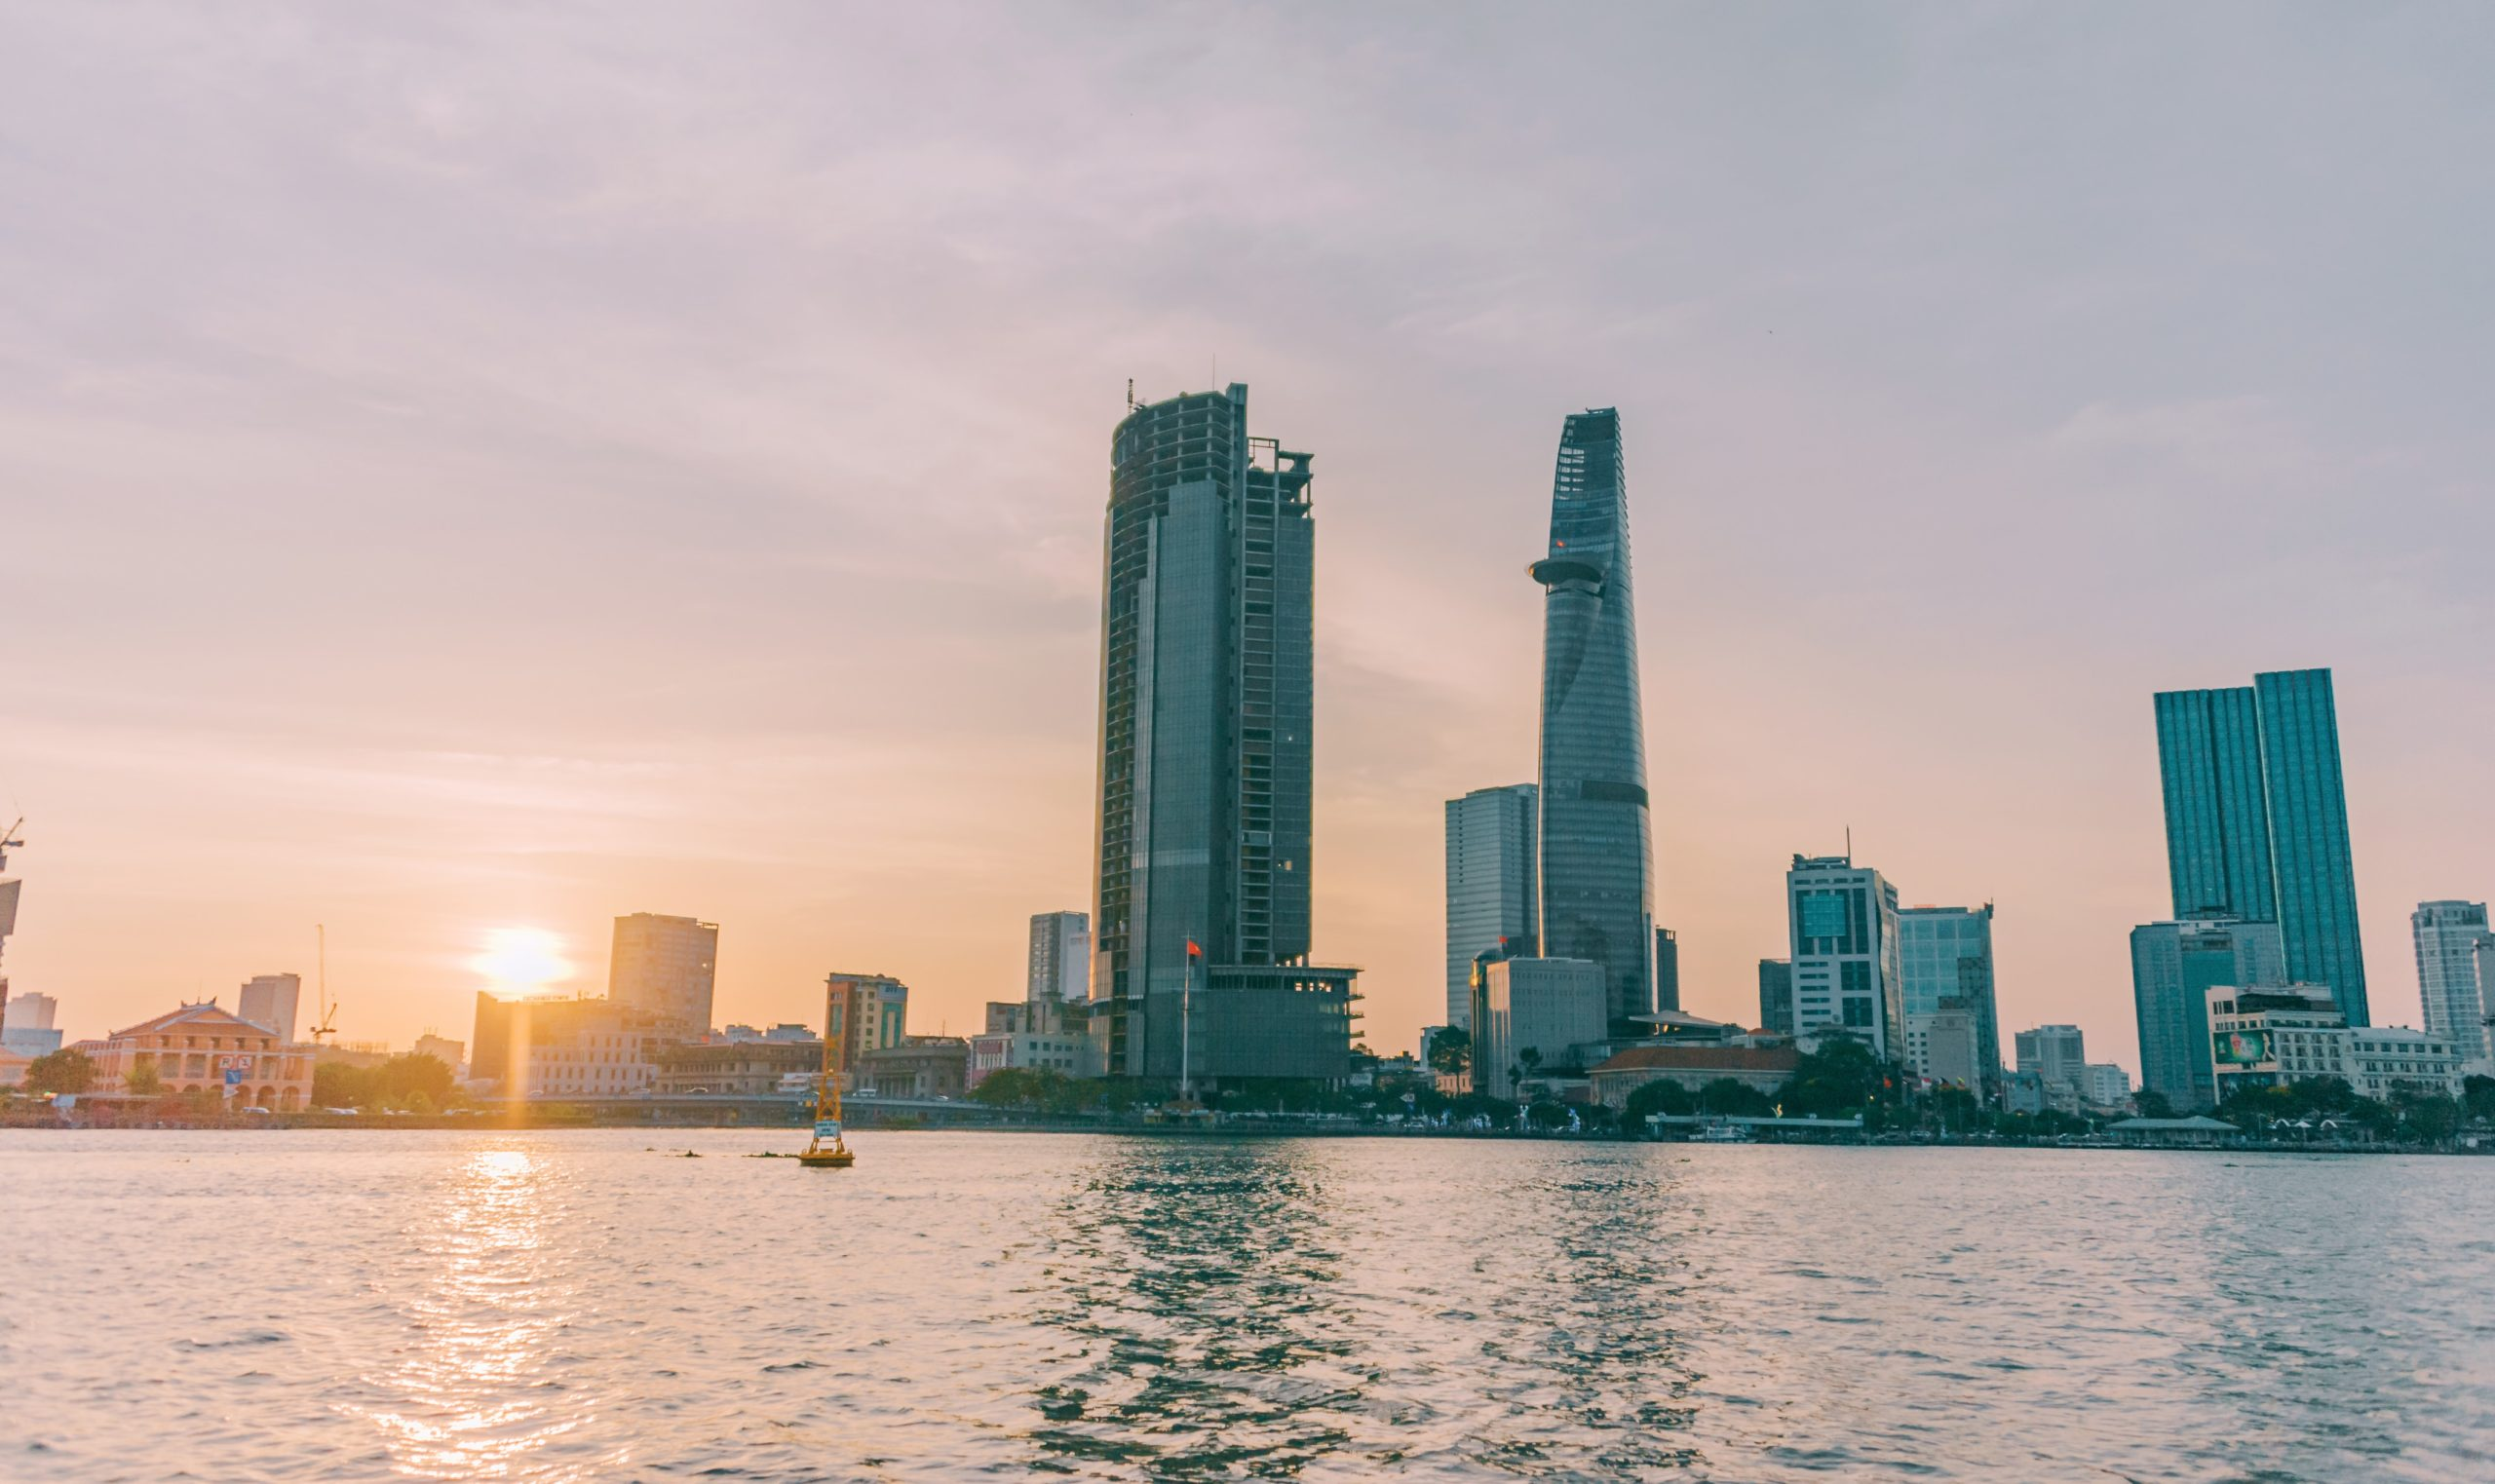 Ho Chi Minh City Sai Gon high rise building near sea with sunshine